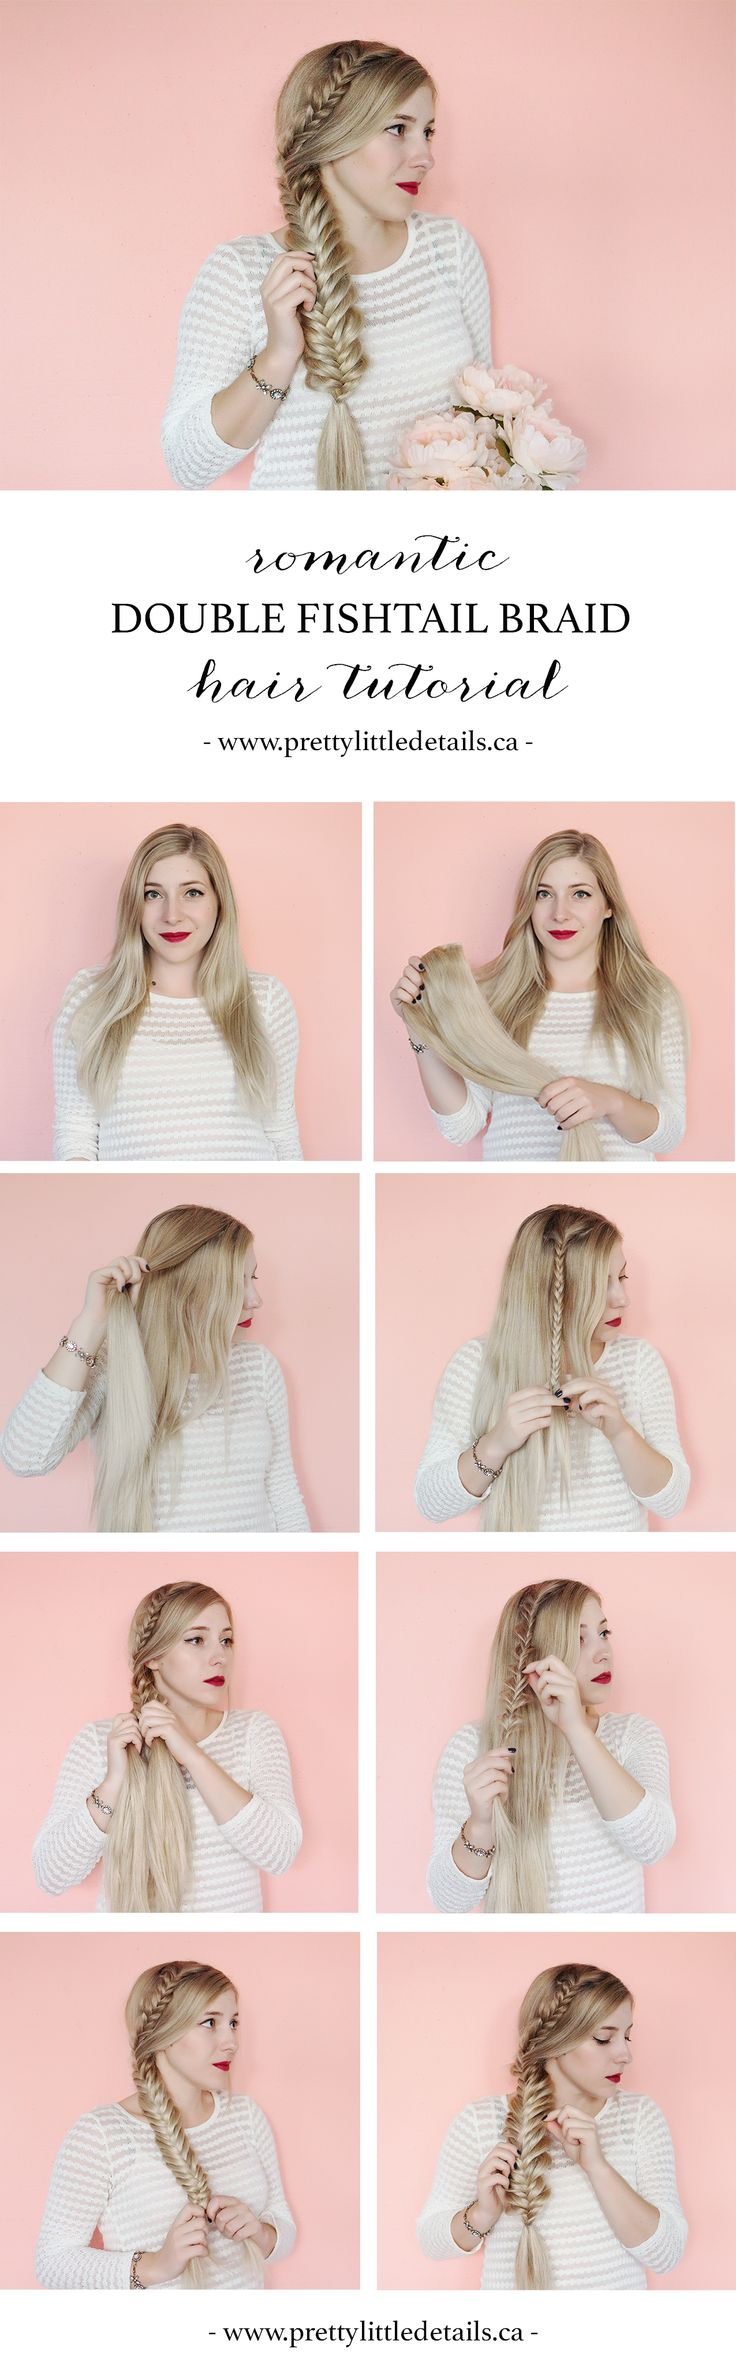 Romantic double fishtail braid // boho braided hair tutorial.